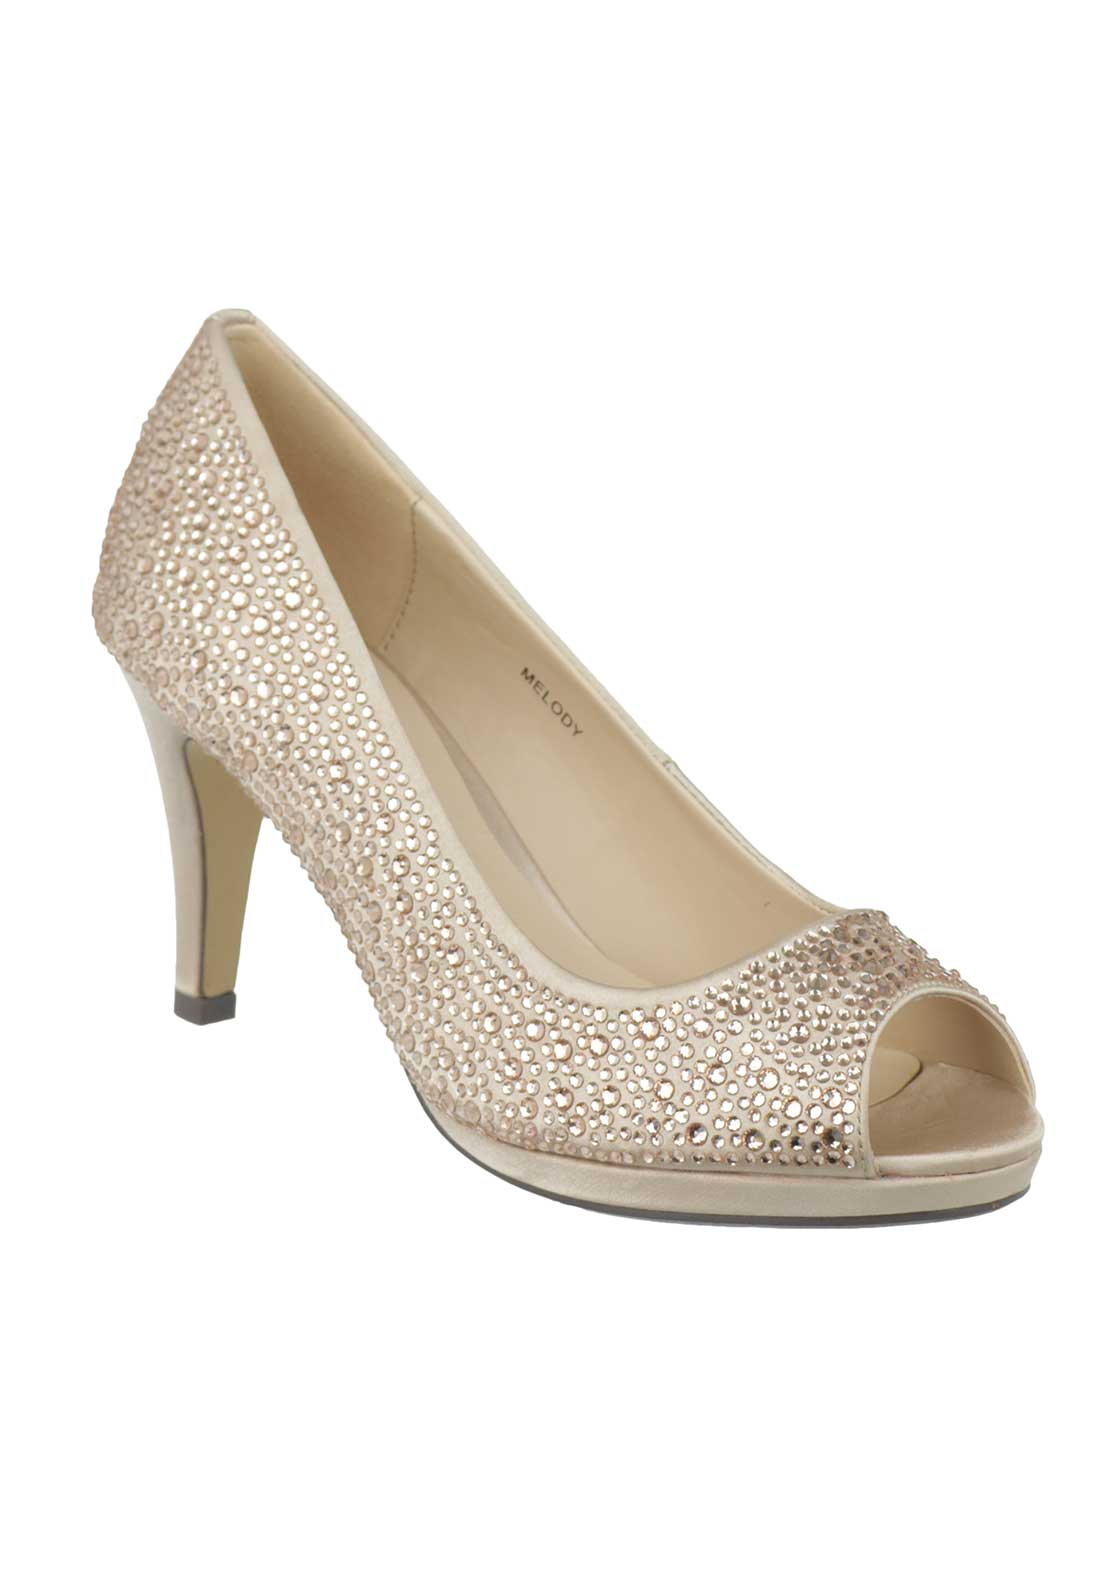 Lunar Elegance Melody Gem Heeled Shoes, Nude